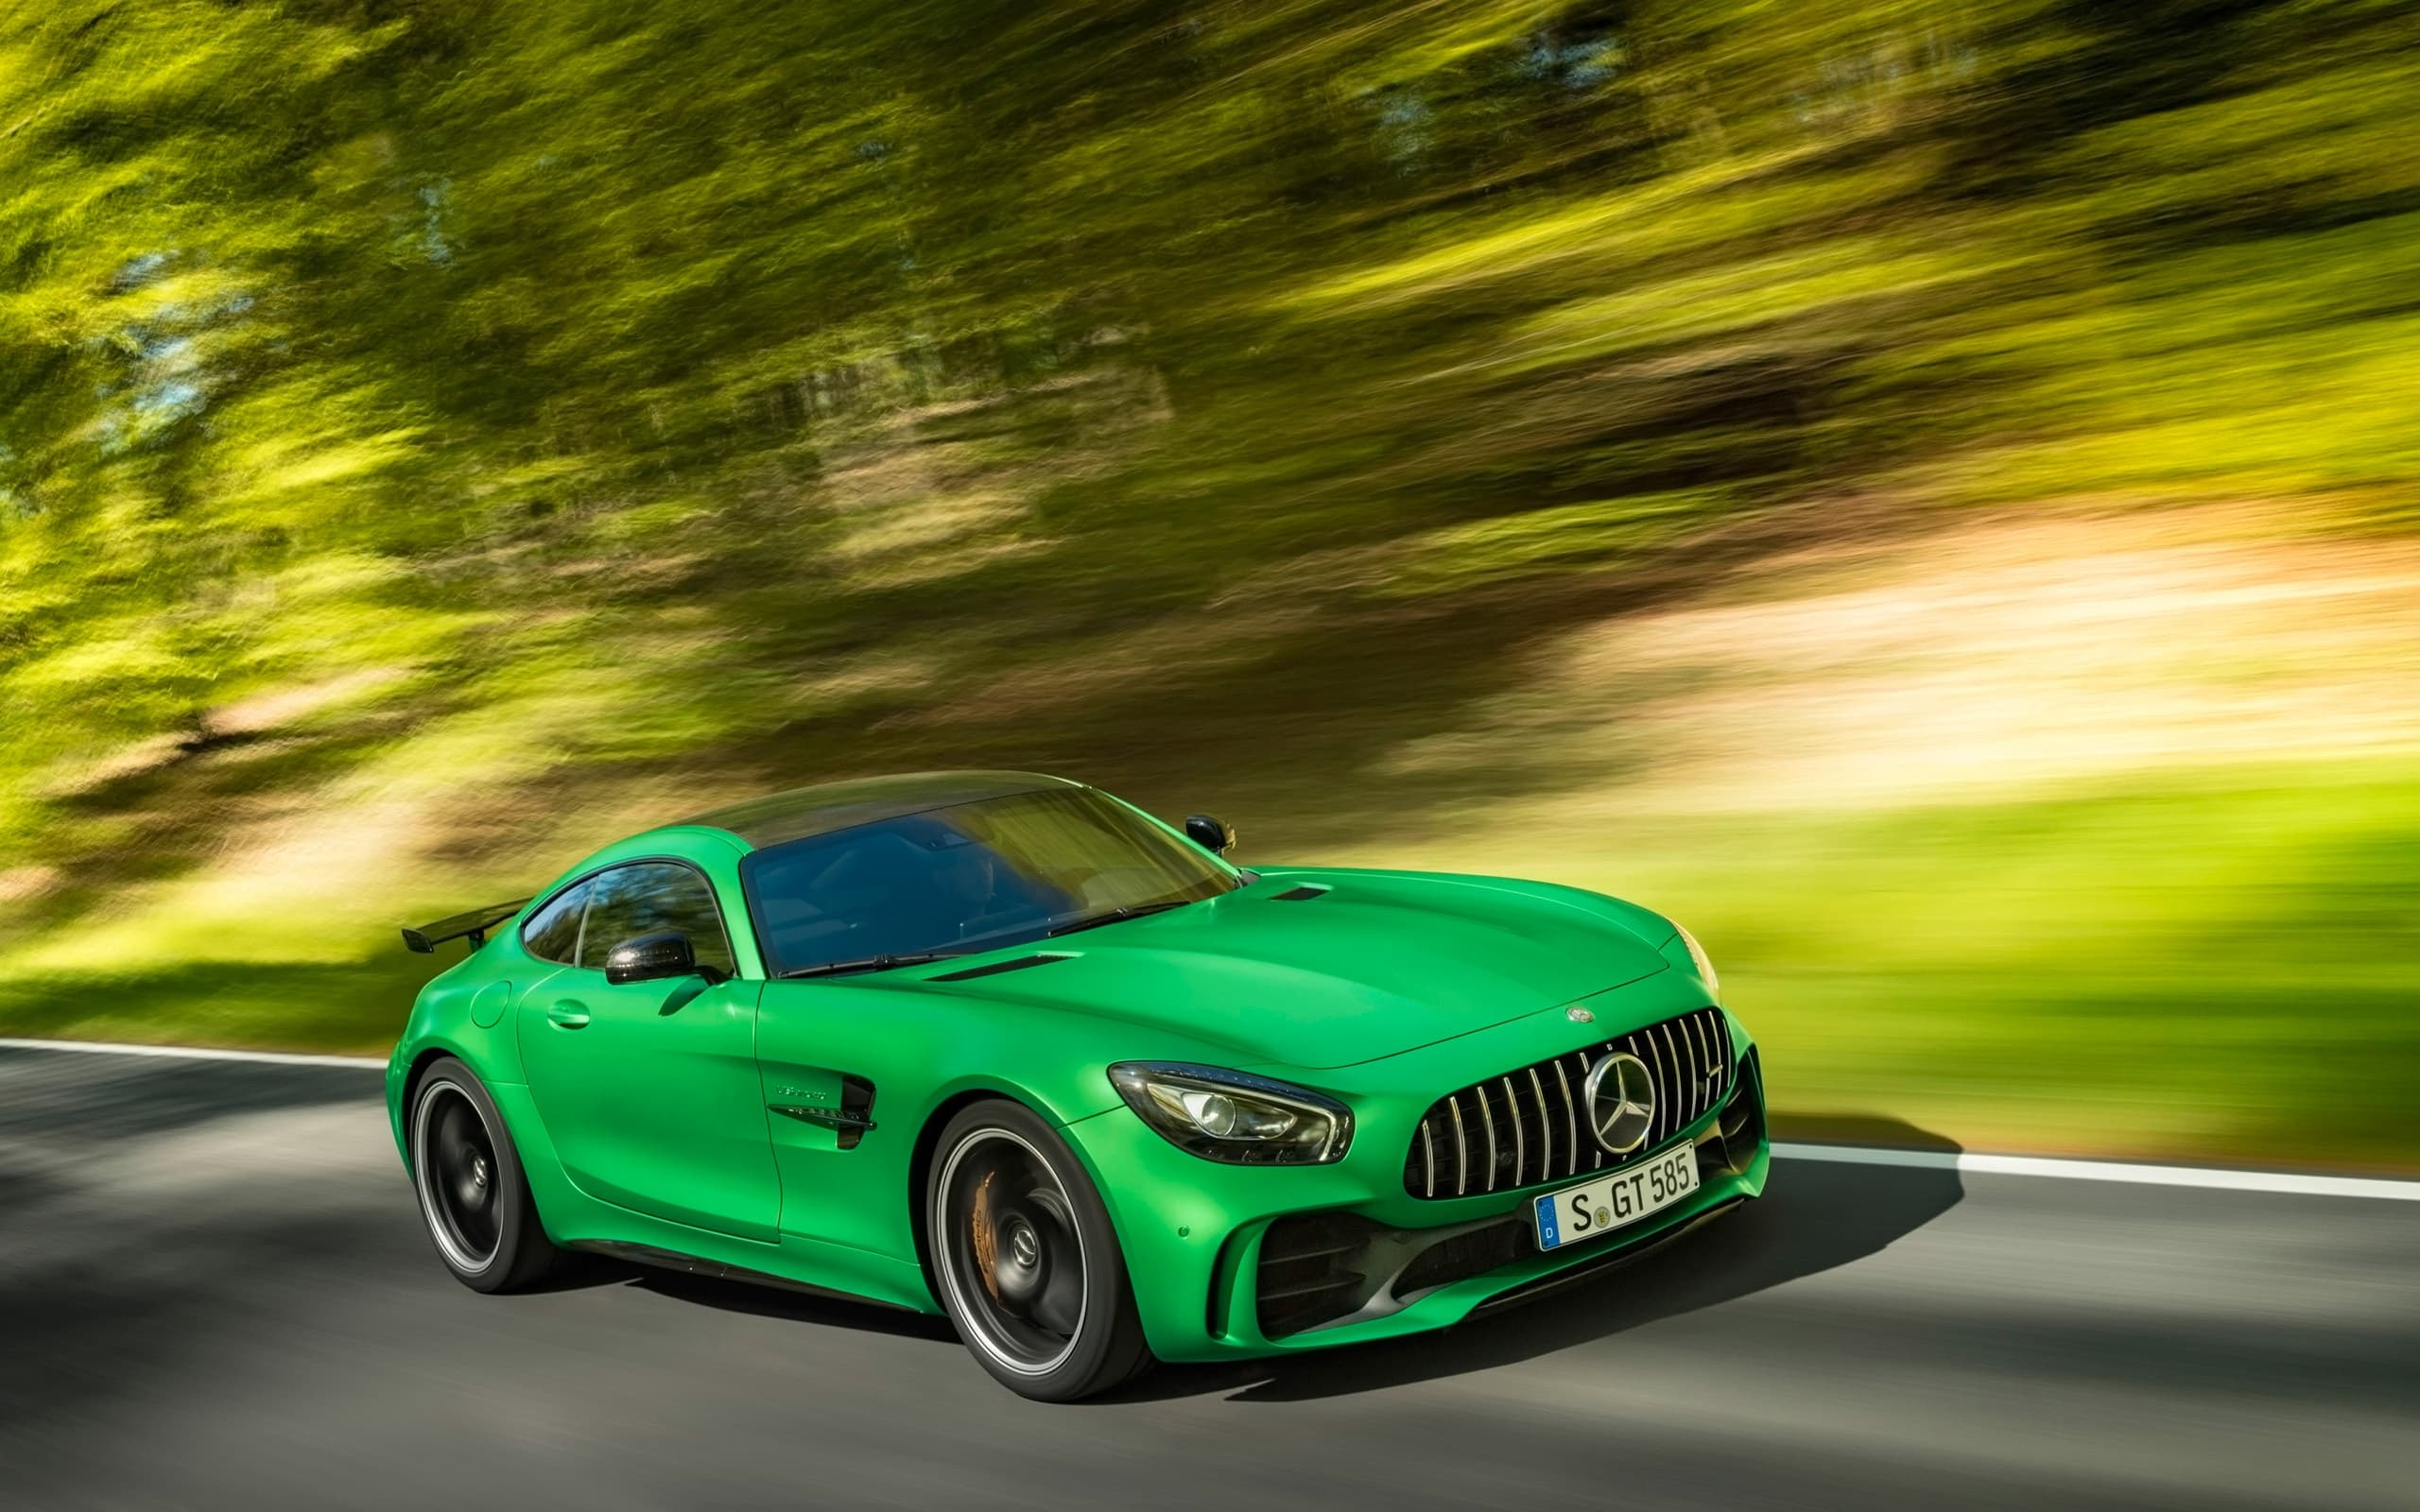 mercedes amg gt r 2017 wallpapers hd high quality and. Black Bedroom Furniture Sets. Home Design Ideas